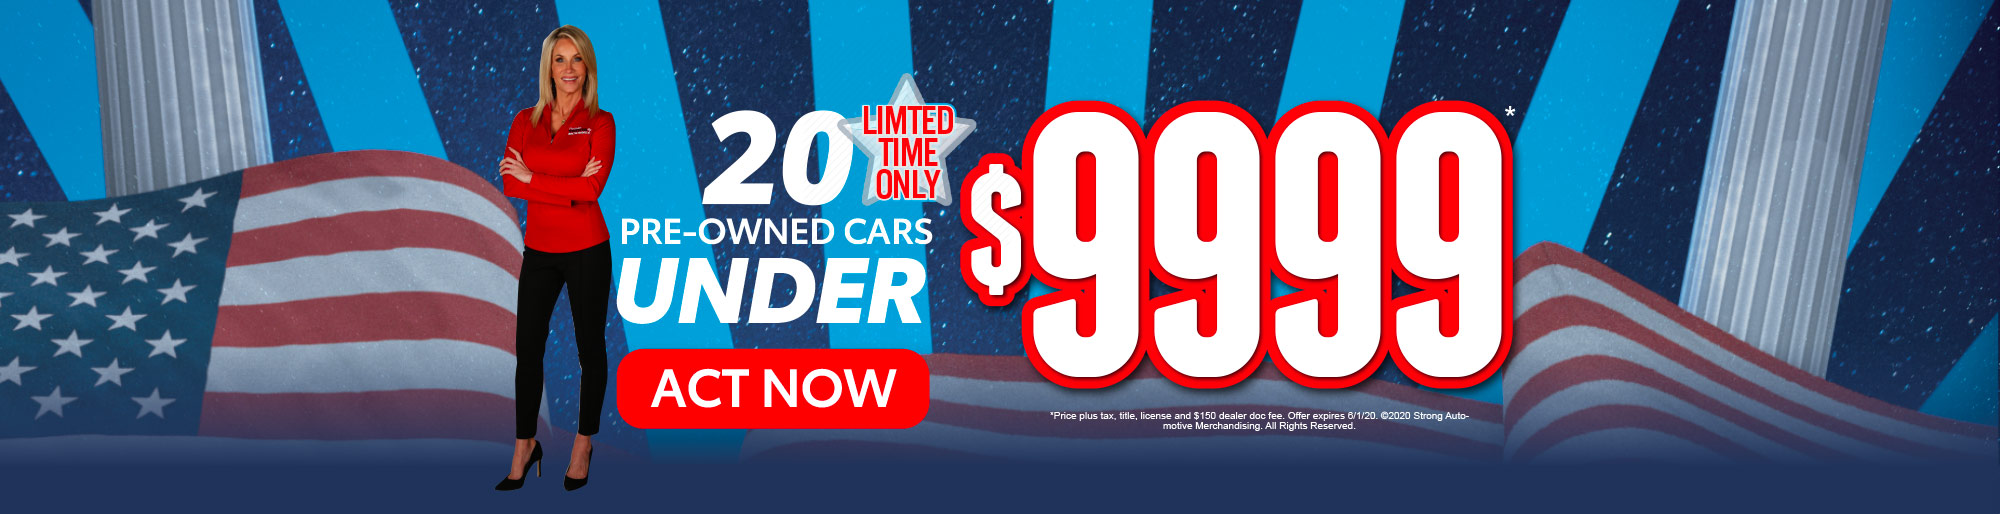 20 preowned cars under $9999 act now